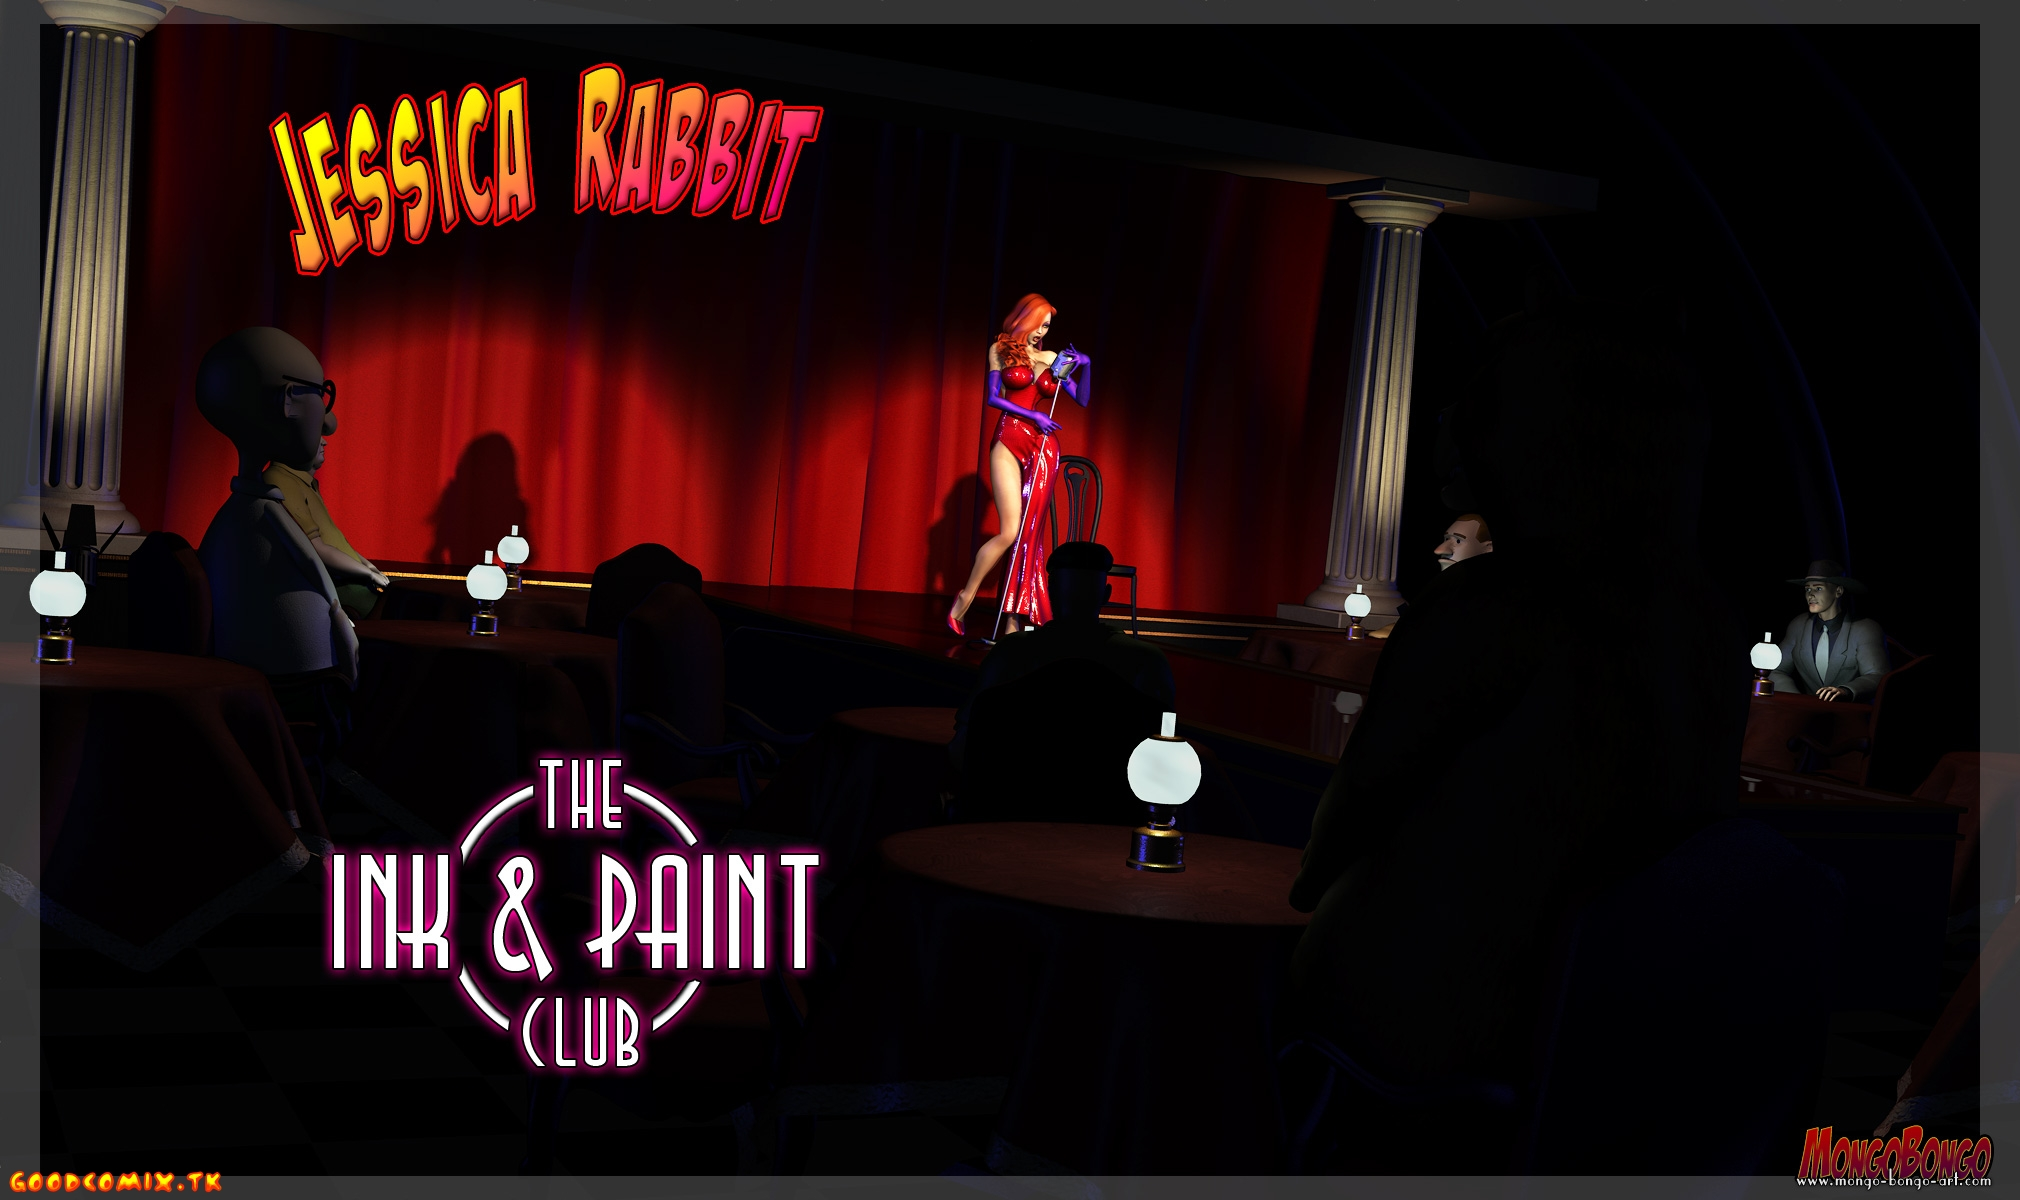 Goodcomix.tk Who Framed Roger Rabbit - [Mongo Bongo] - The Ink & Paint Club